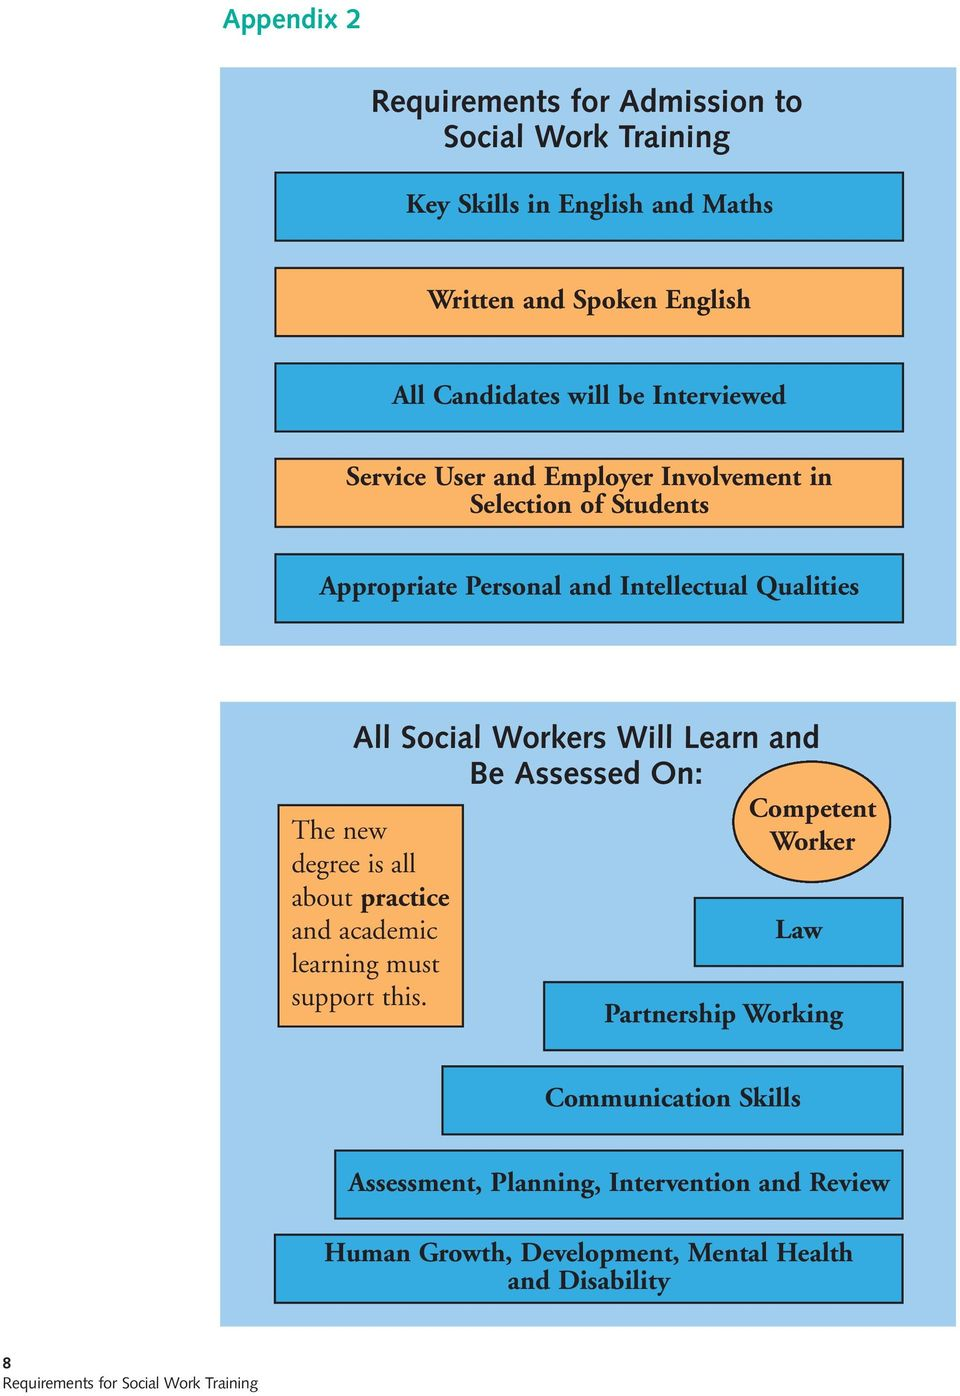 Social Workers Will Learn and Be Assessed On: The new degree is all about practice and academic learning must support this.